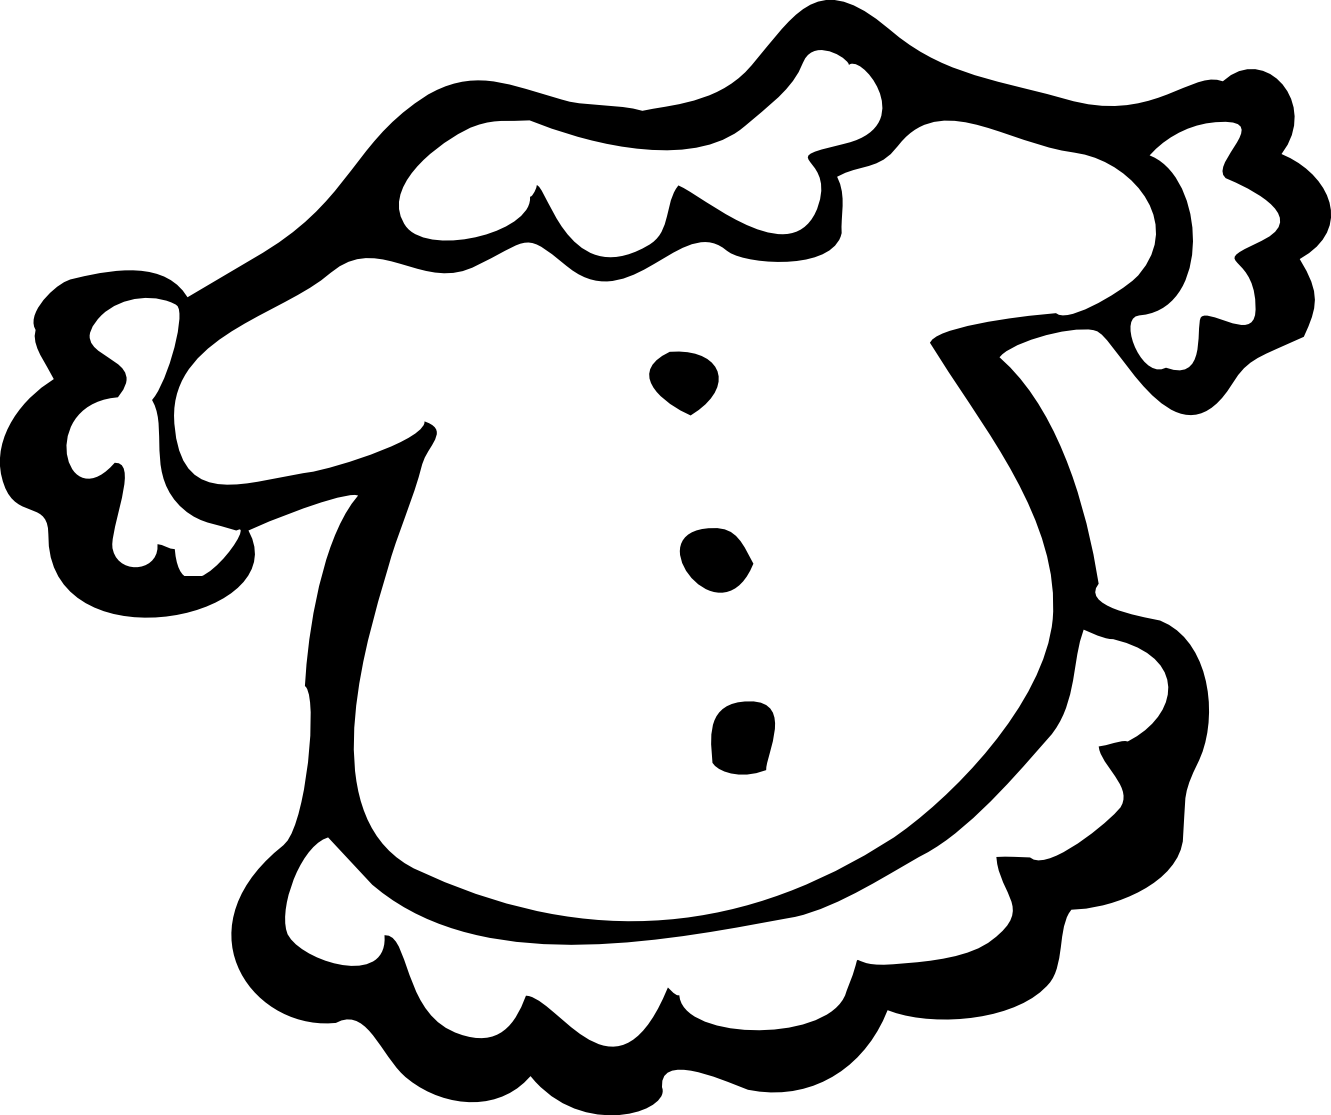 1331x1115 Artistic Clipart Black And White